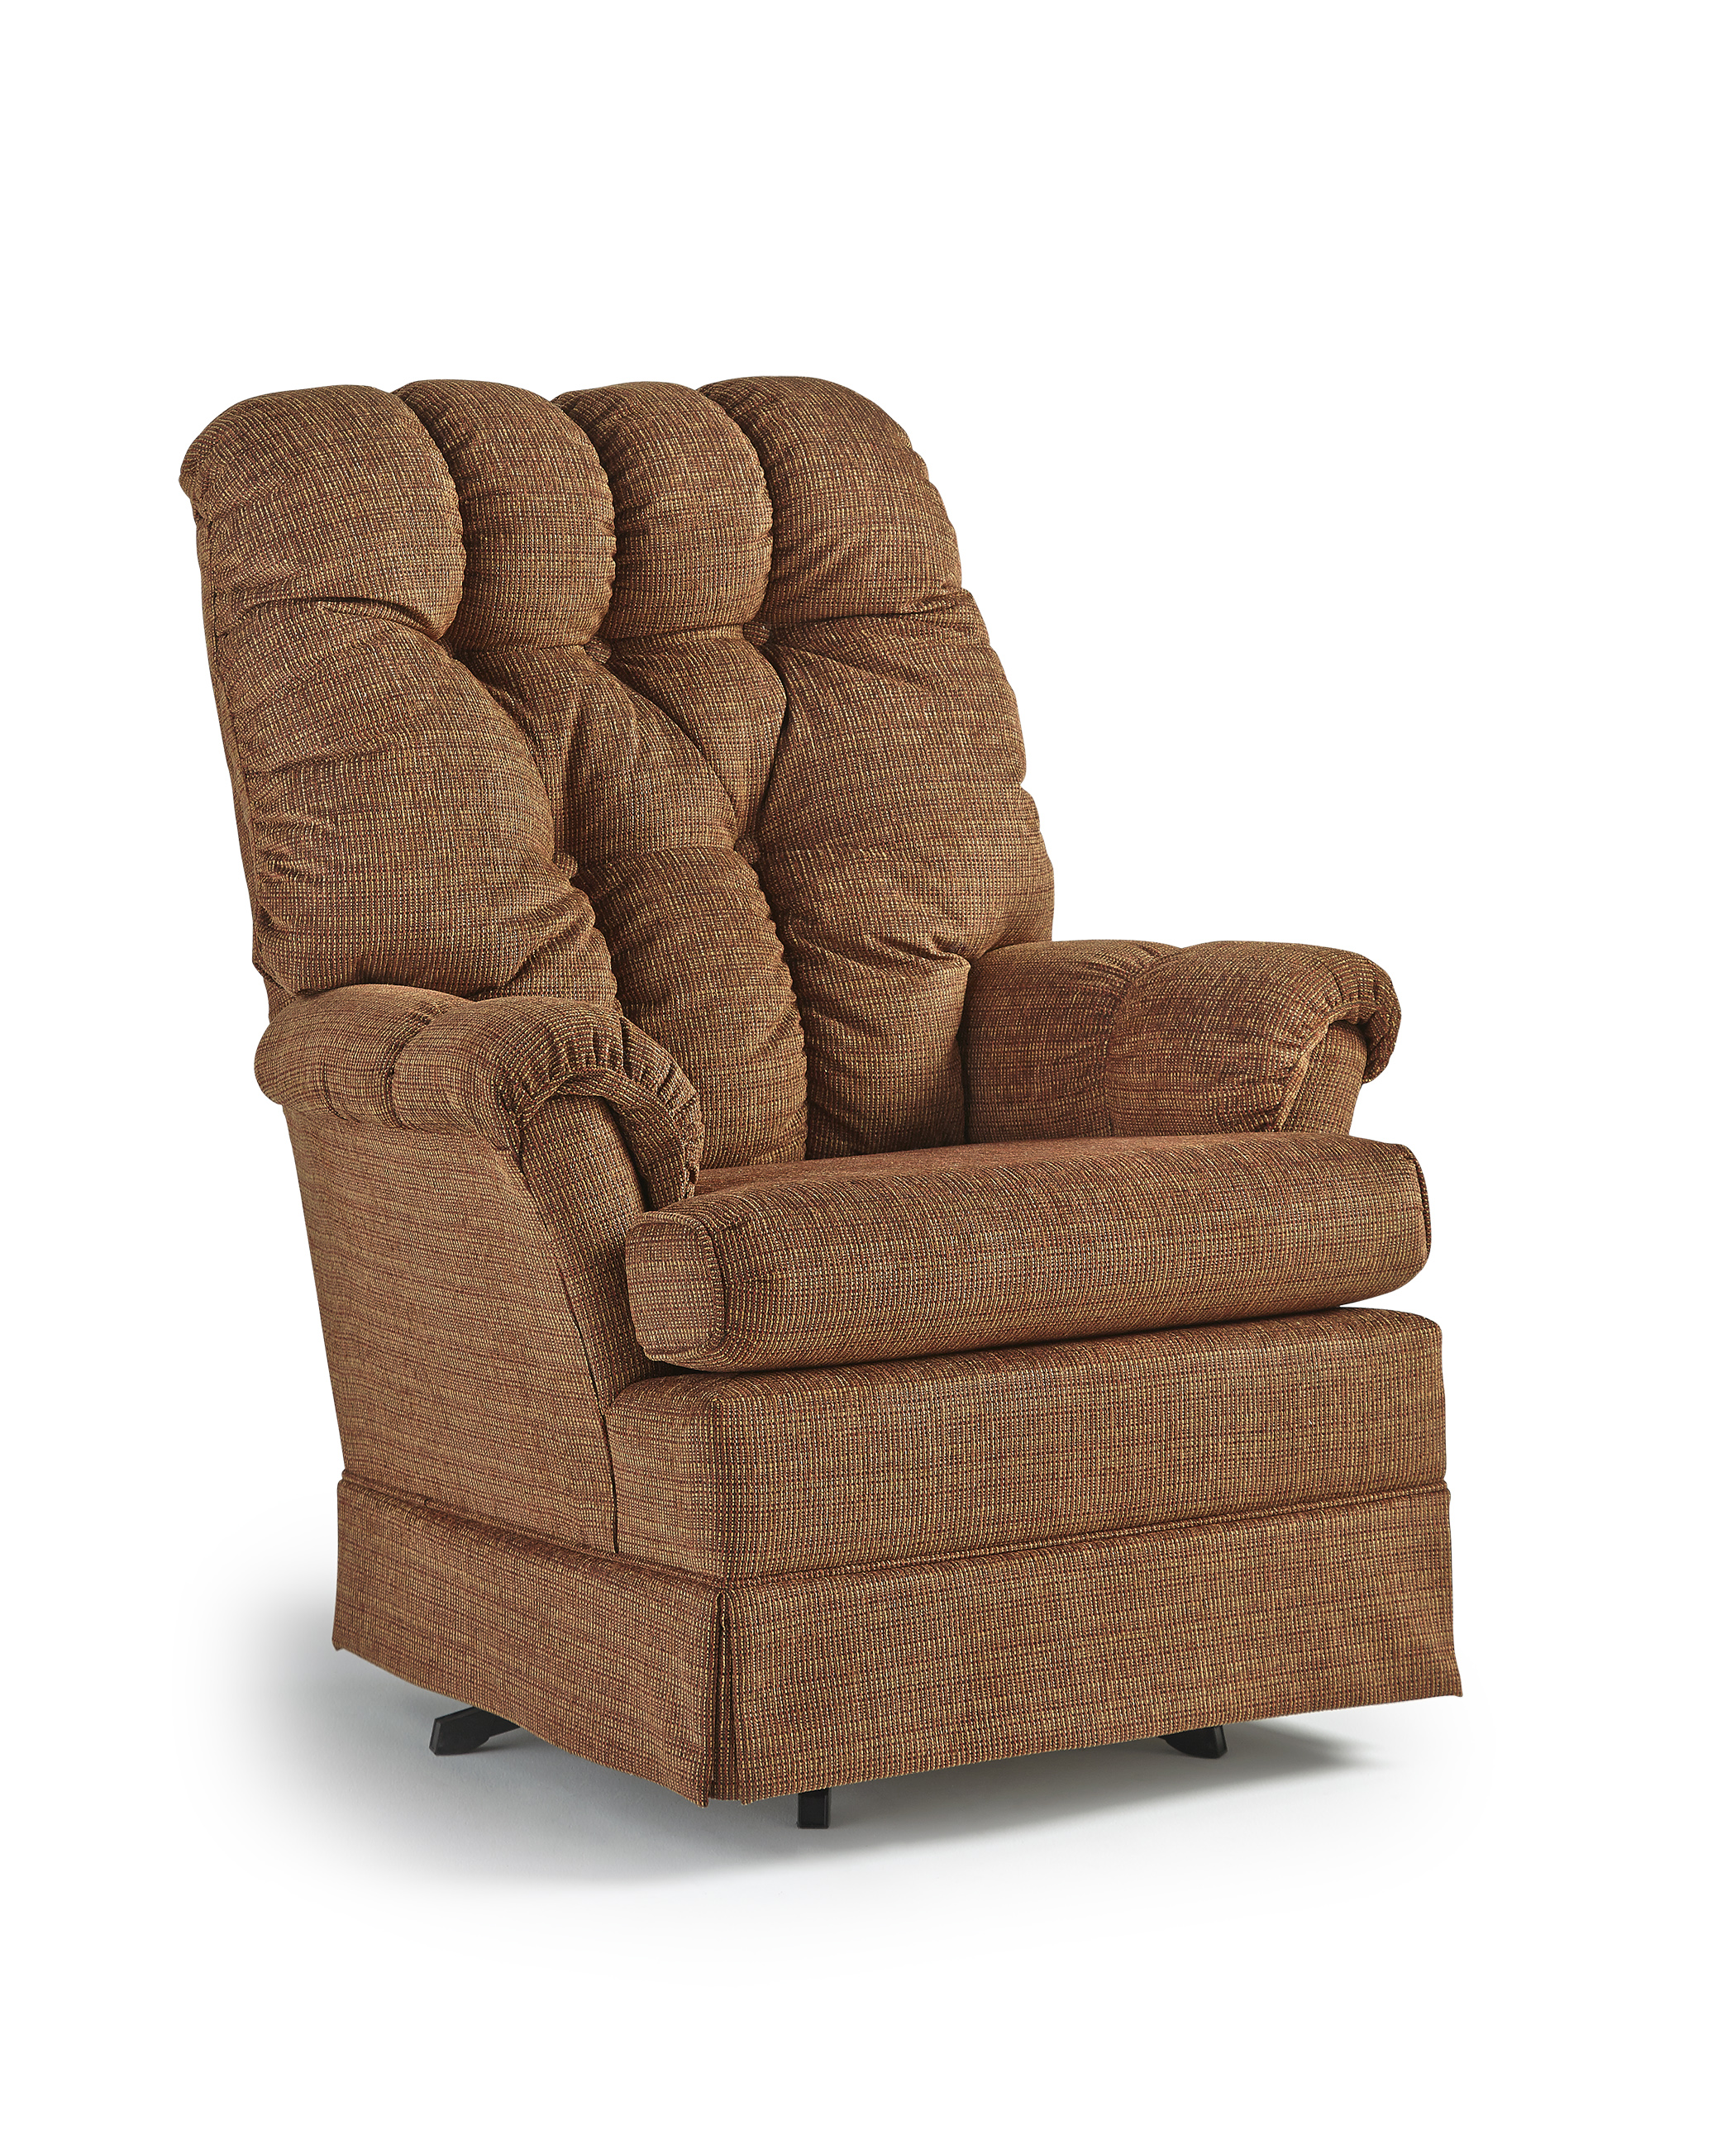 Astonishing The Chair Outlet Gliders And Rockers Camellatalisay Diy Chair Ideas Camellatalisaycom